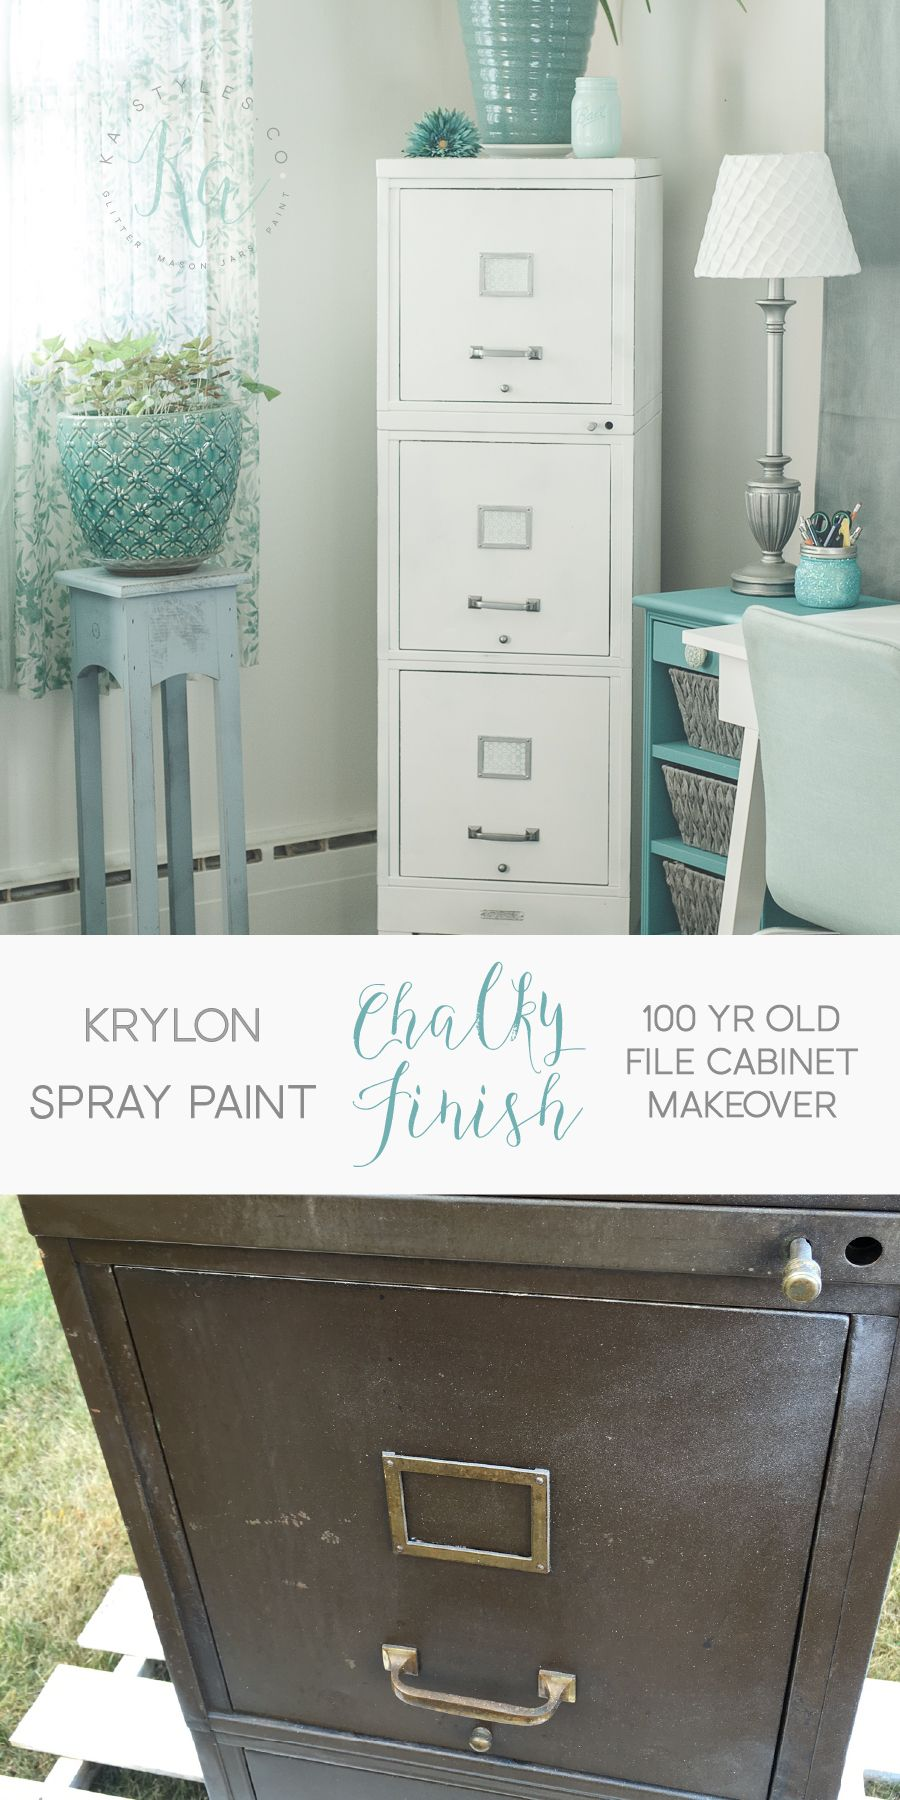 Krylon Chalky Finish Spray Paint File Cabinet Makeover Filecabinetmakeover